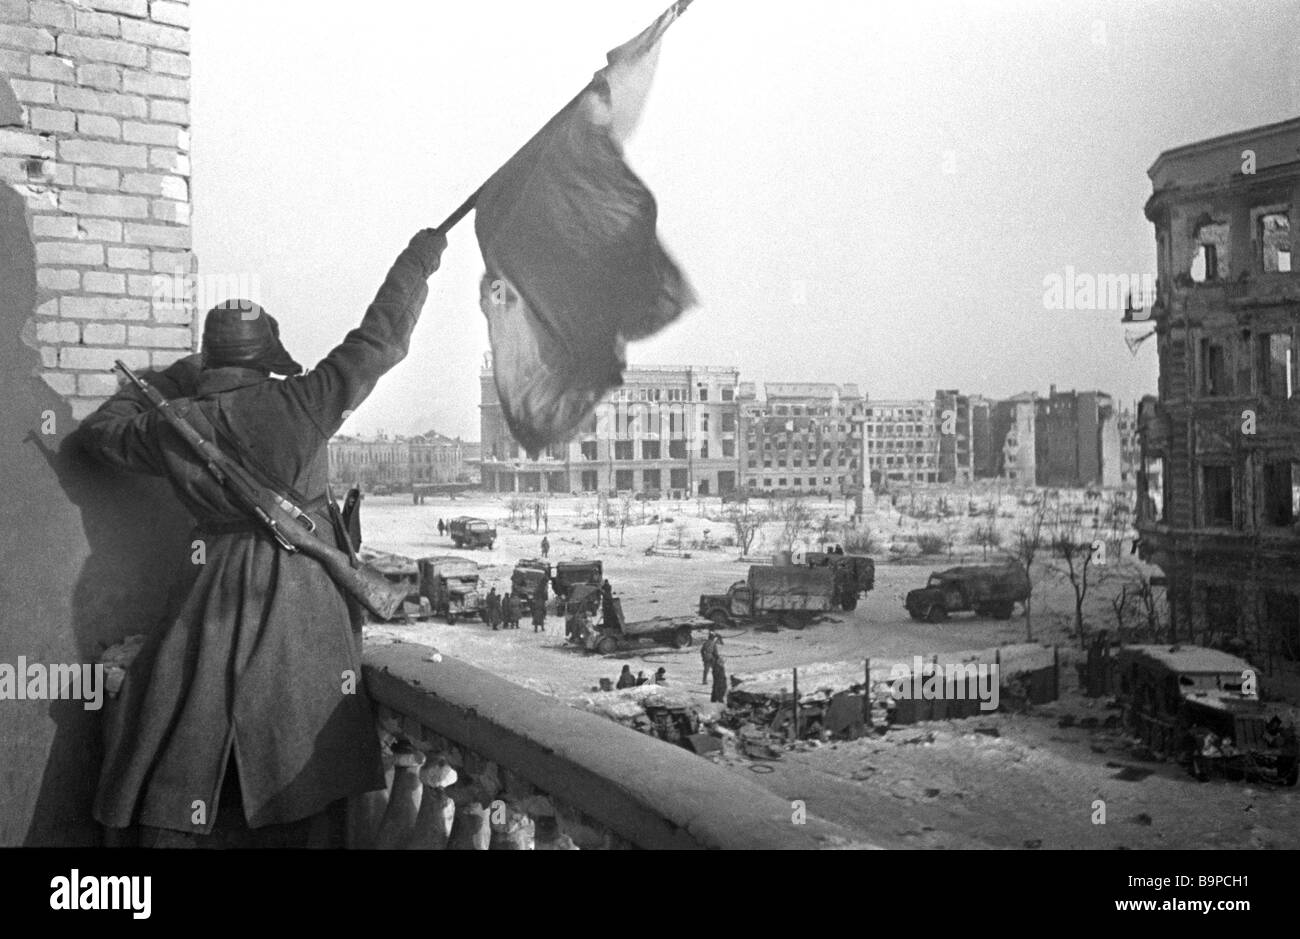 The Victory flag hoisted after the Battle of Stalingrad World War Two 1943 Stock Photo